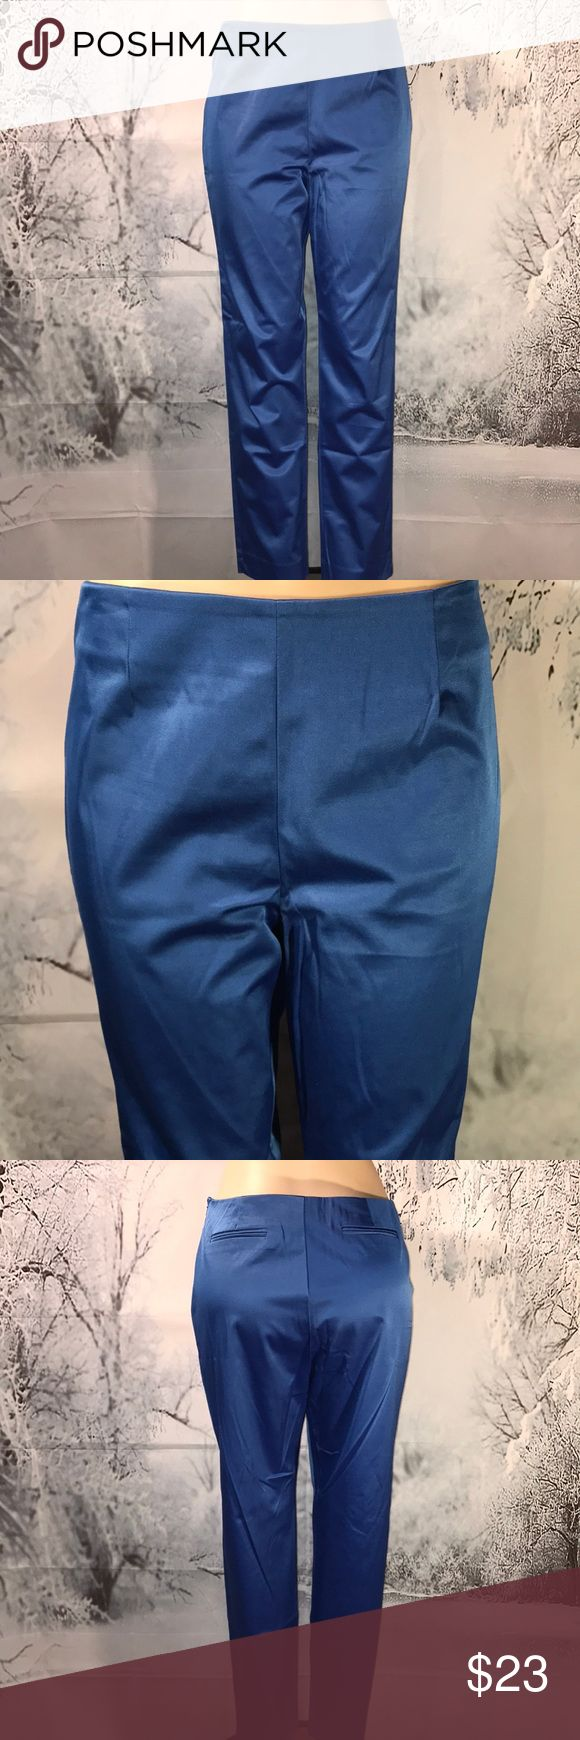 "Eric Sig Ankle Stretch Pant  Size 12 💕 NWOT Gorgeous pair of shiny blue Ankle stretch pants by Eric Signature. These are a mid rise straight leg stretch. Beautiful blue. Size 12 waist measures 17"" and are 29"" long. ❤️😊🐾🐾 Eric Signature Pants Ankle & Cropped"